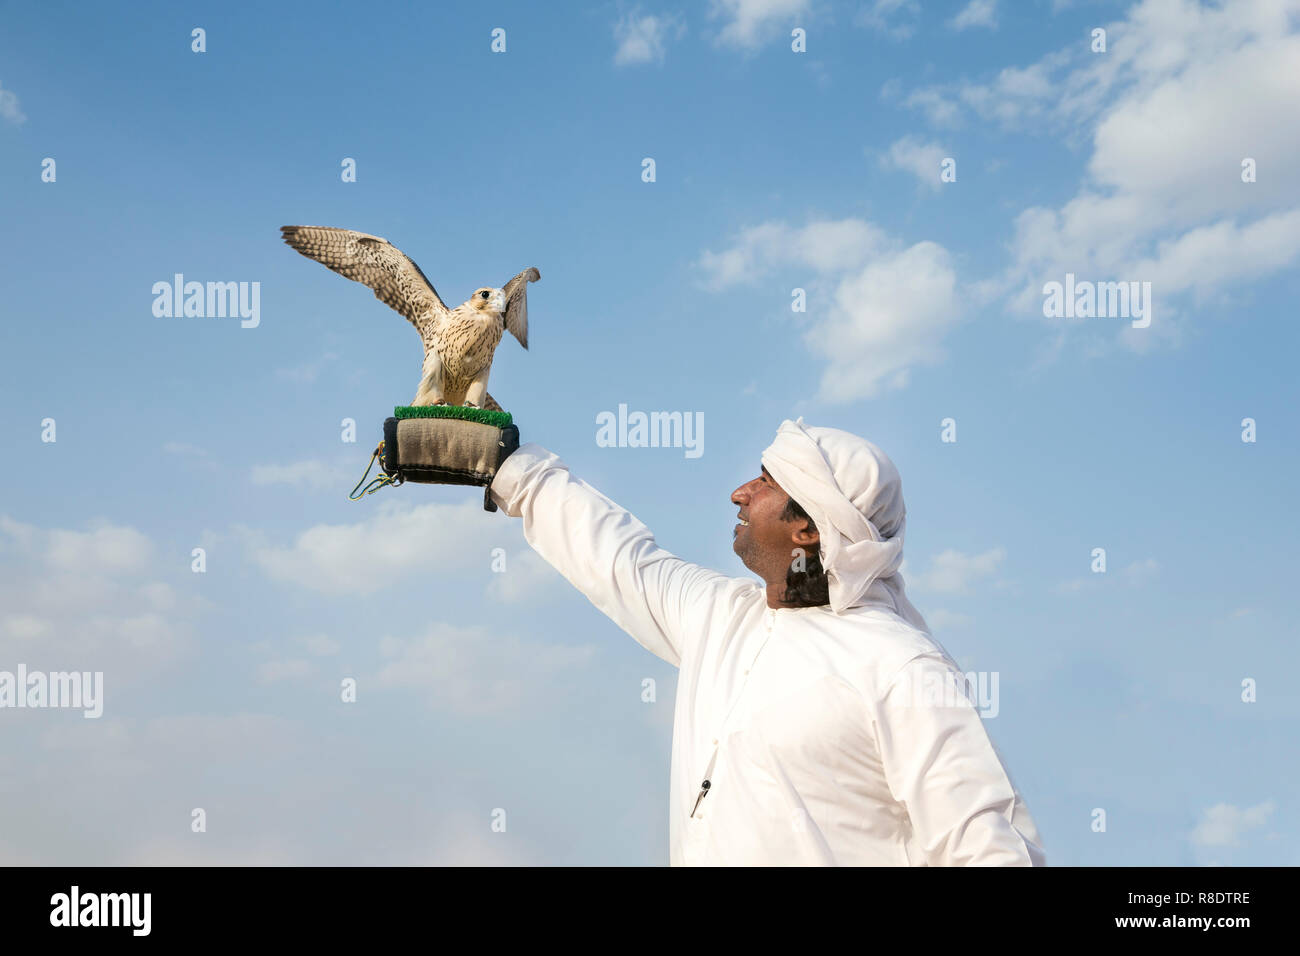 abu Dhabi, United Arab Emirates, 15th December 2017: Emirati man training his falcon Stock Photo